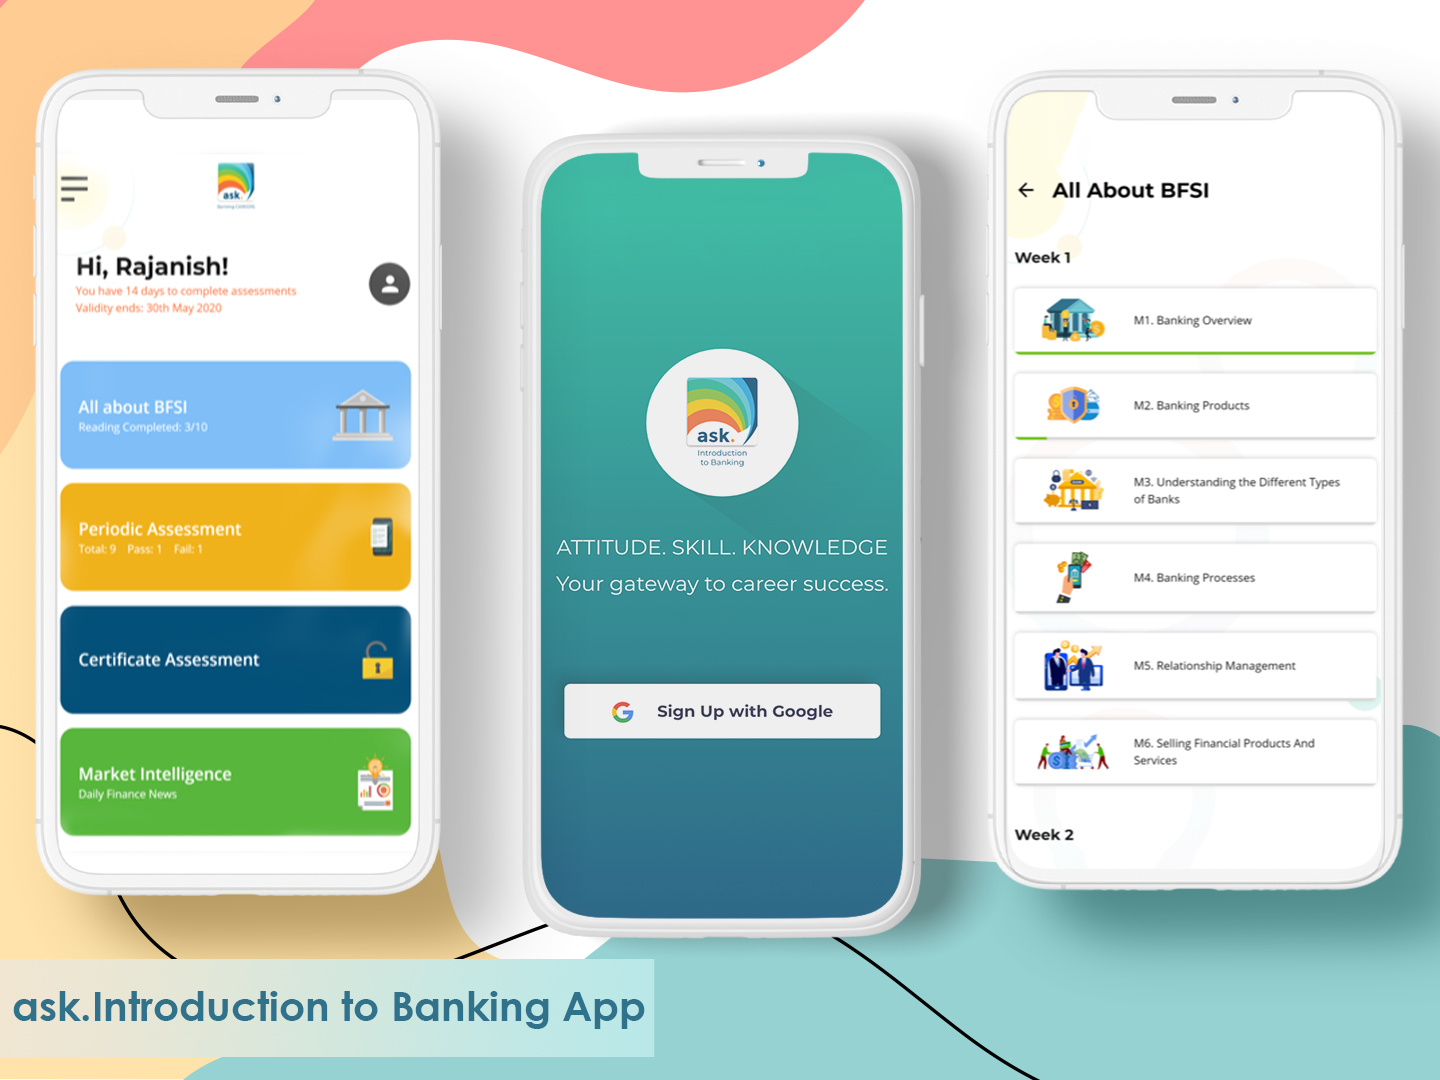 ask. Introduction to Banking